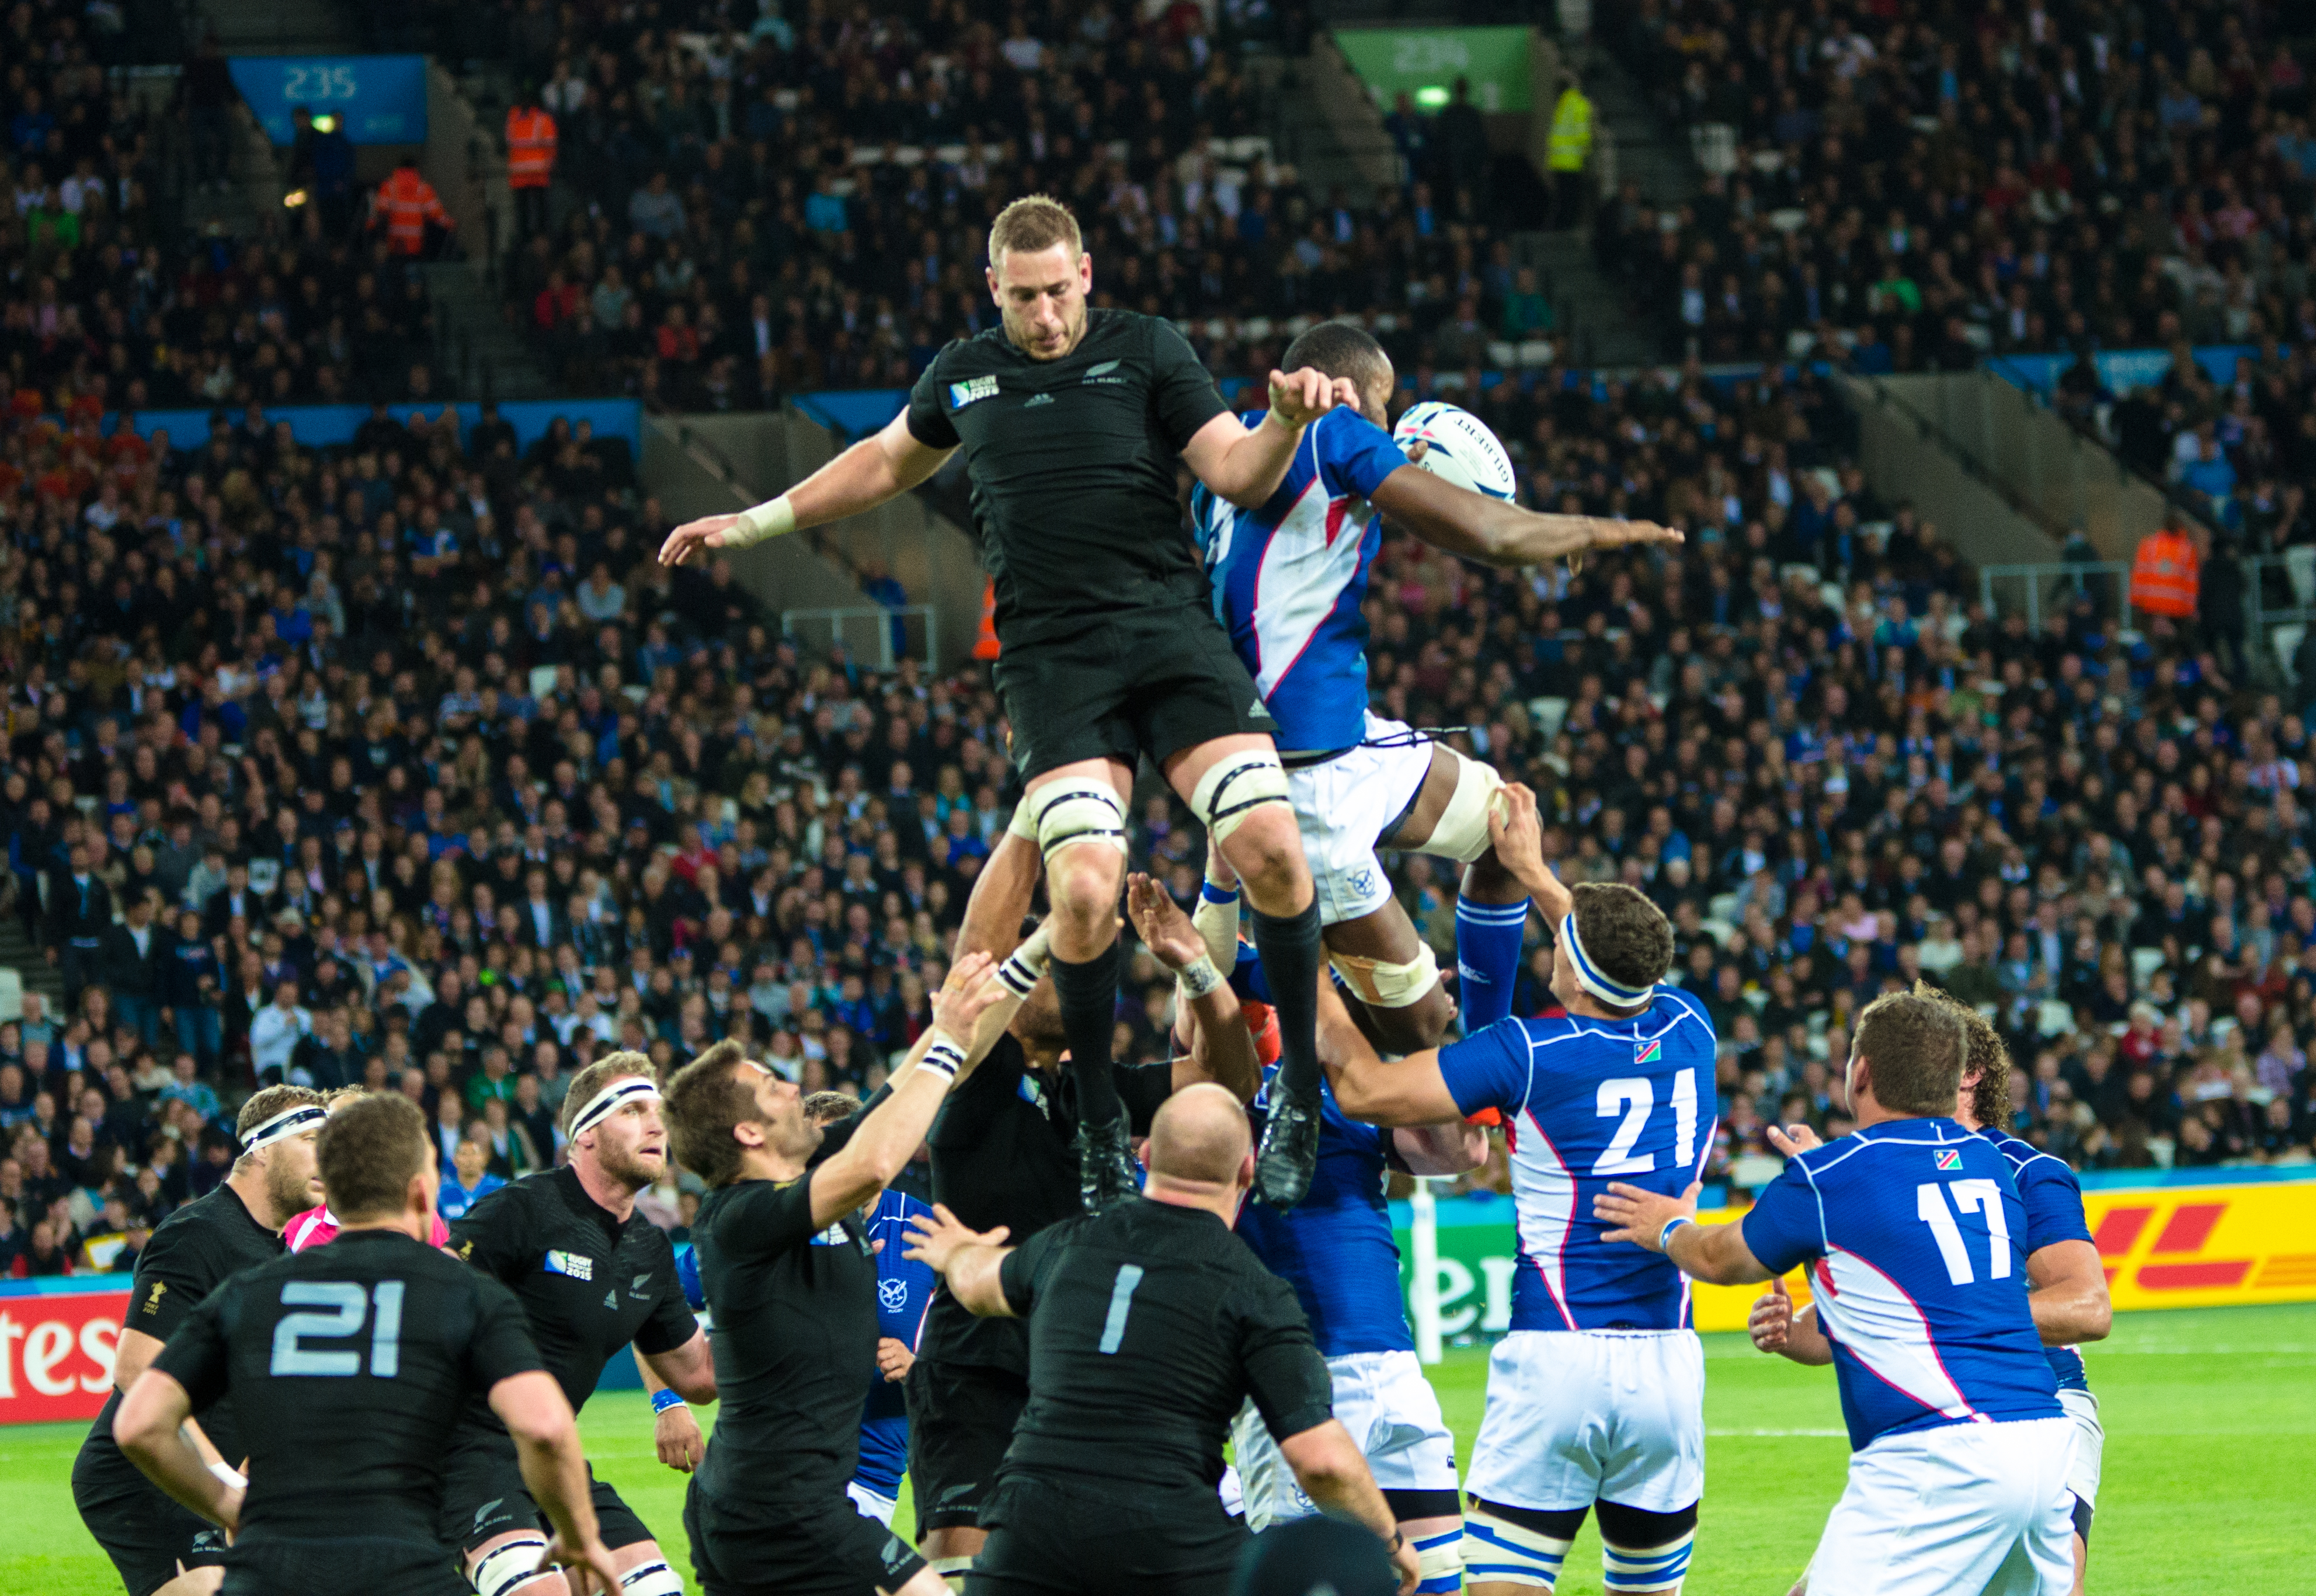 File:New Zealand vs Namibia 2015 RWC lineout.jpg